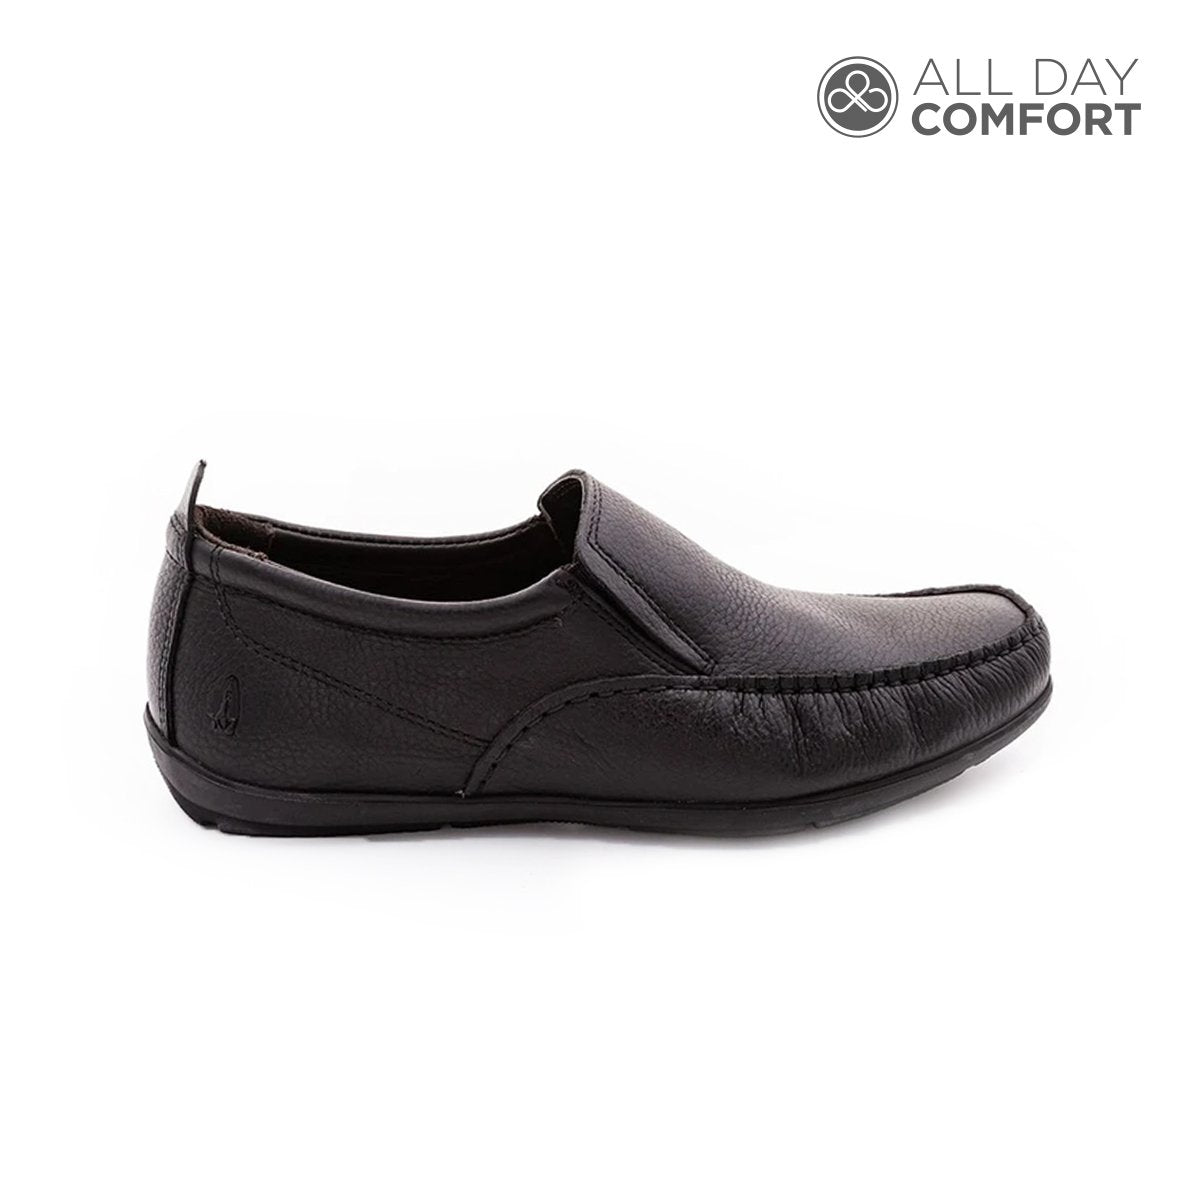 ZAPATO CASUAL ANDRETTI - COLOR  NEGRO